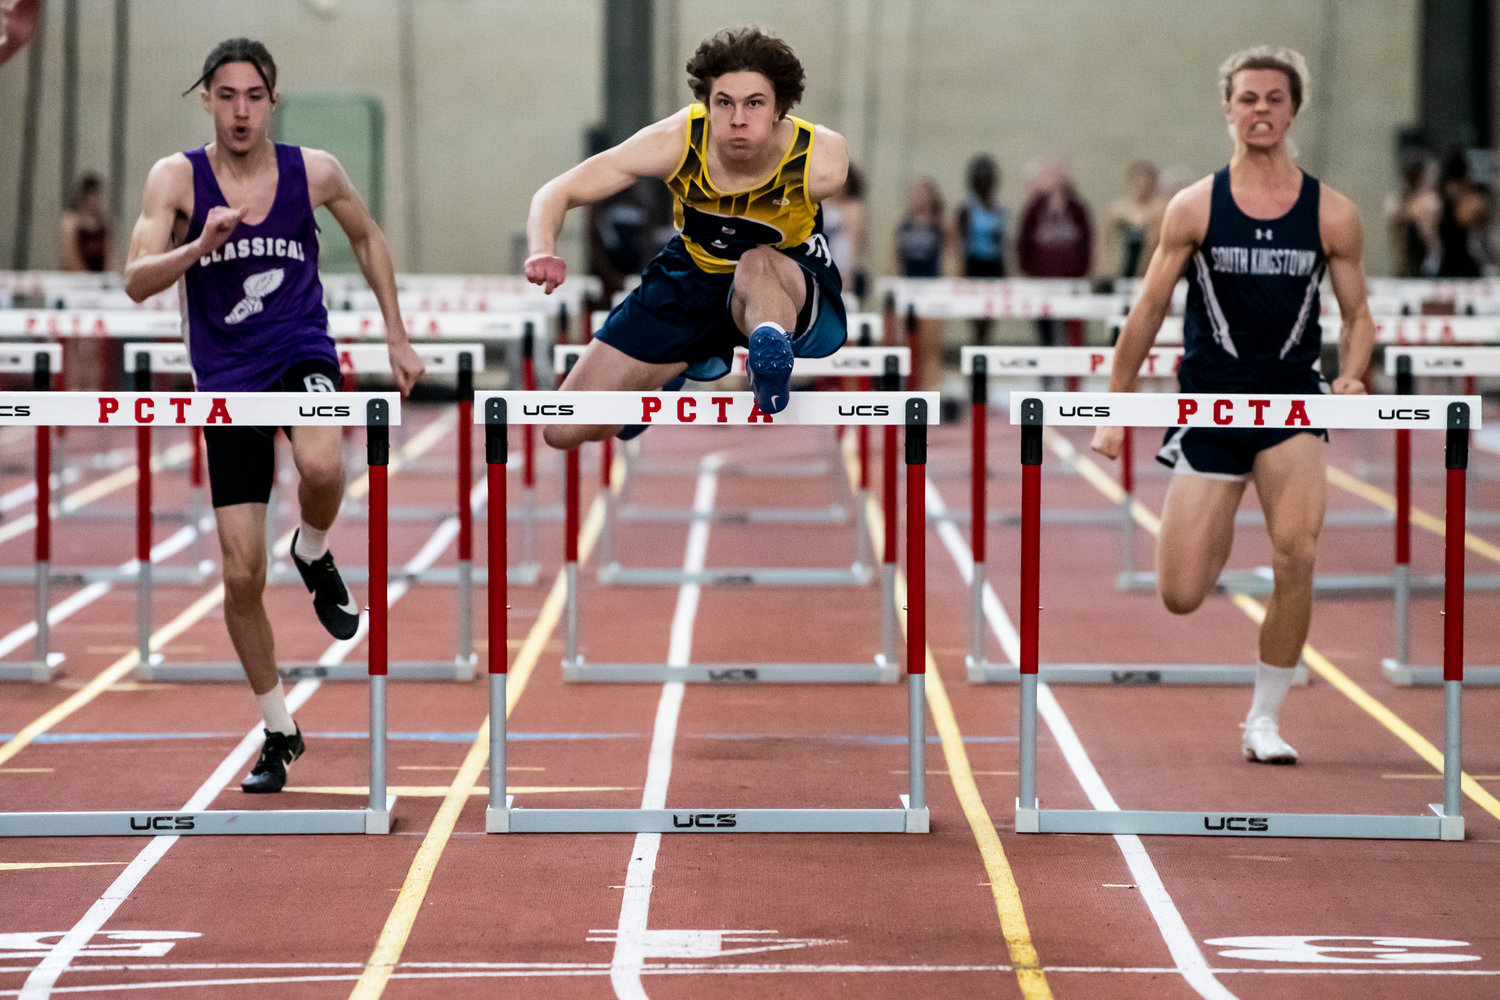 Barrington High School's Walter Joachim-DelPoio (middle) runs to victory in the 55-meter hurdle race.